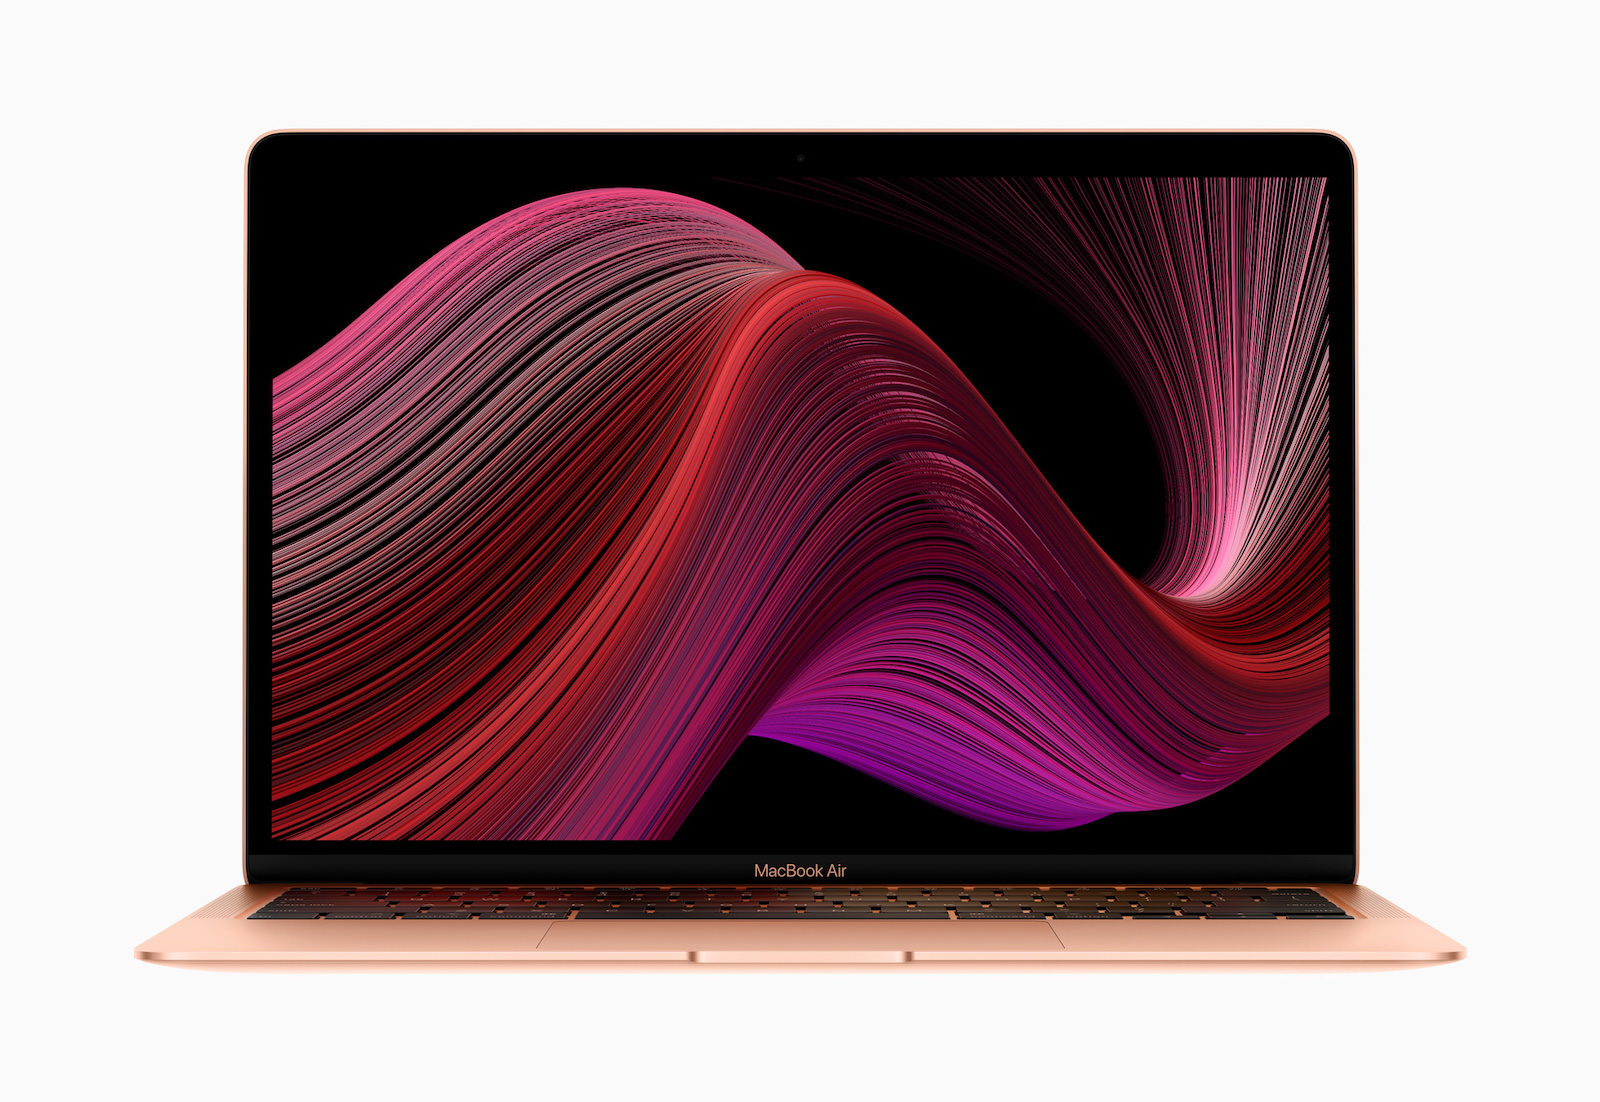 Apple new macbook air wallpaper screen 03182020